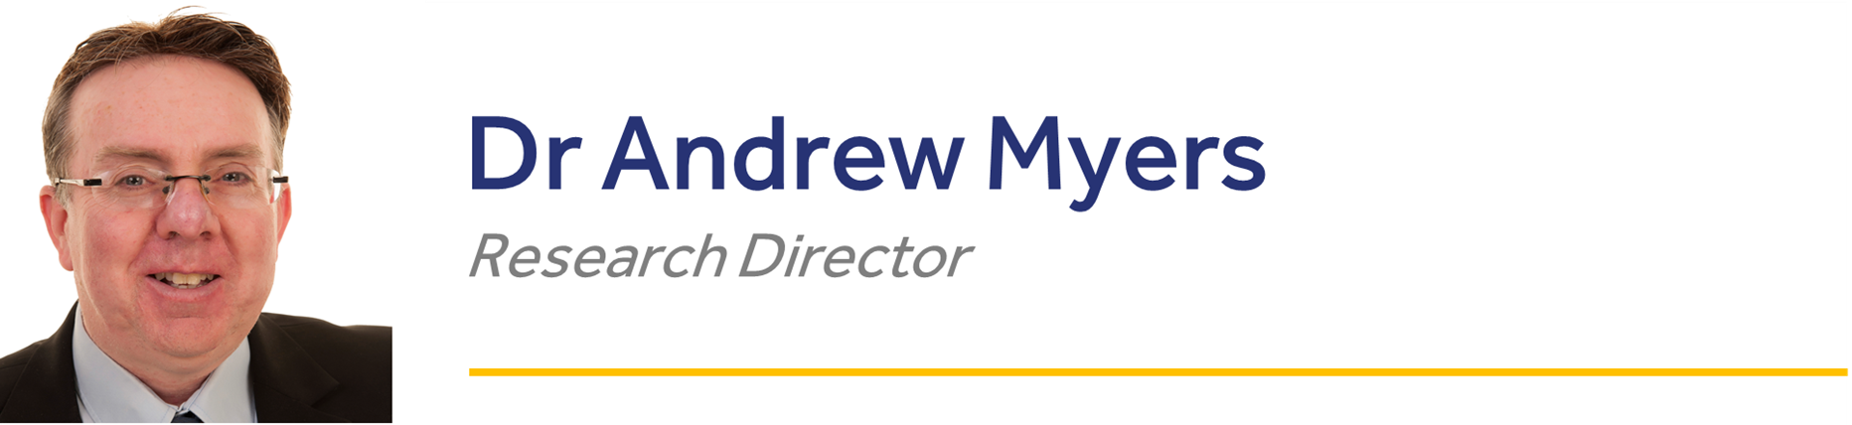 HCCM-People-Andrew-Myers-1.png?mtime=20200423095331#asset:133215